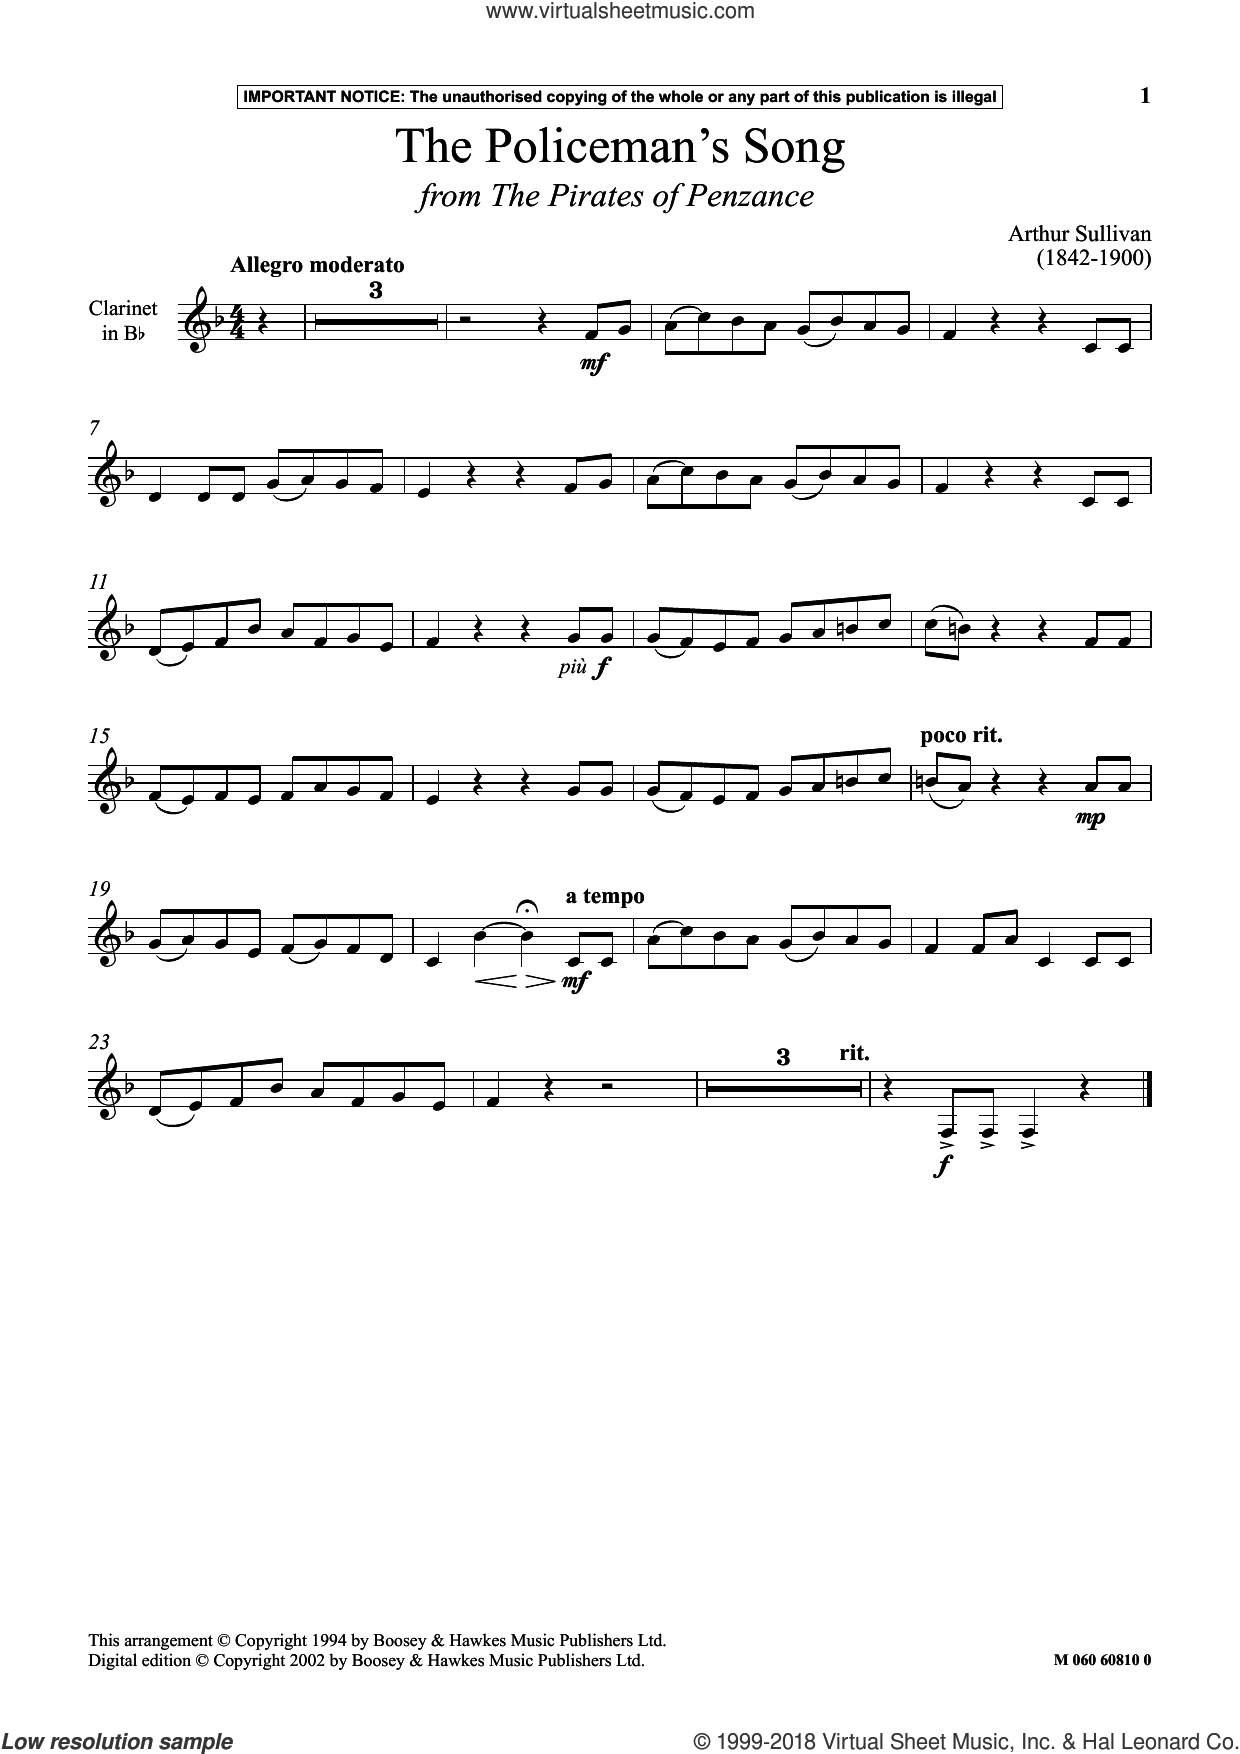 The Policeman's Song (from The Pirates Of Penzance) sheet music for clarinet solo by Arthur Sullivan, intermediate skill level